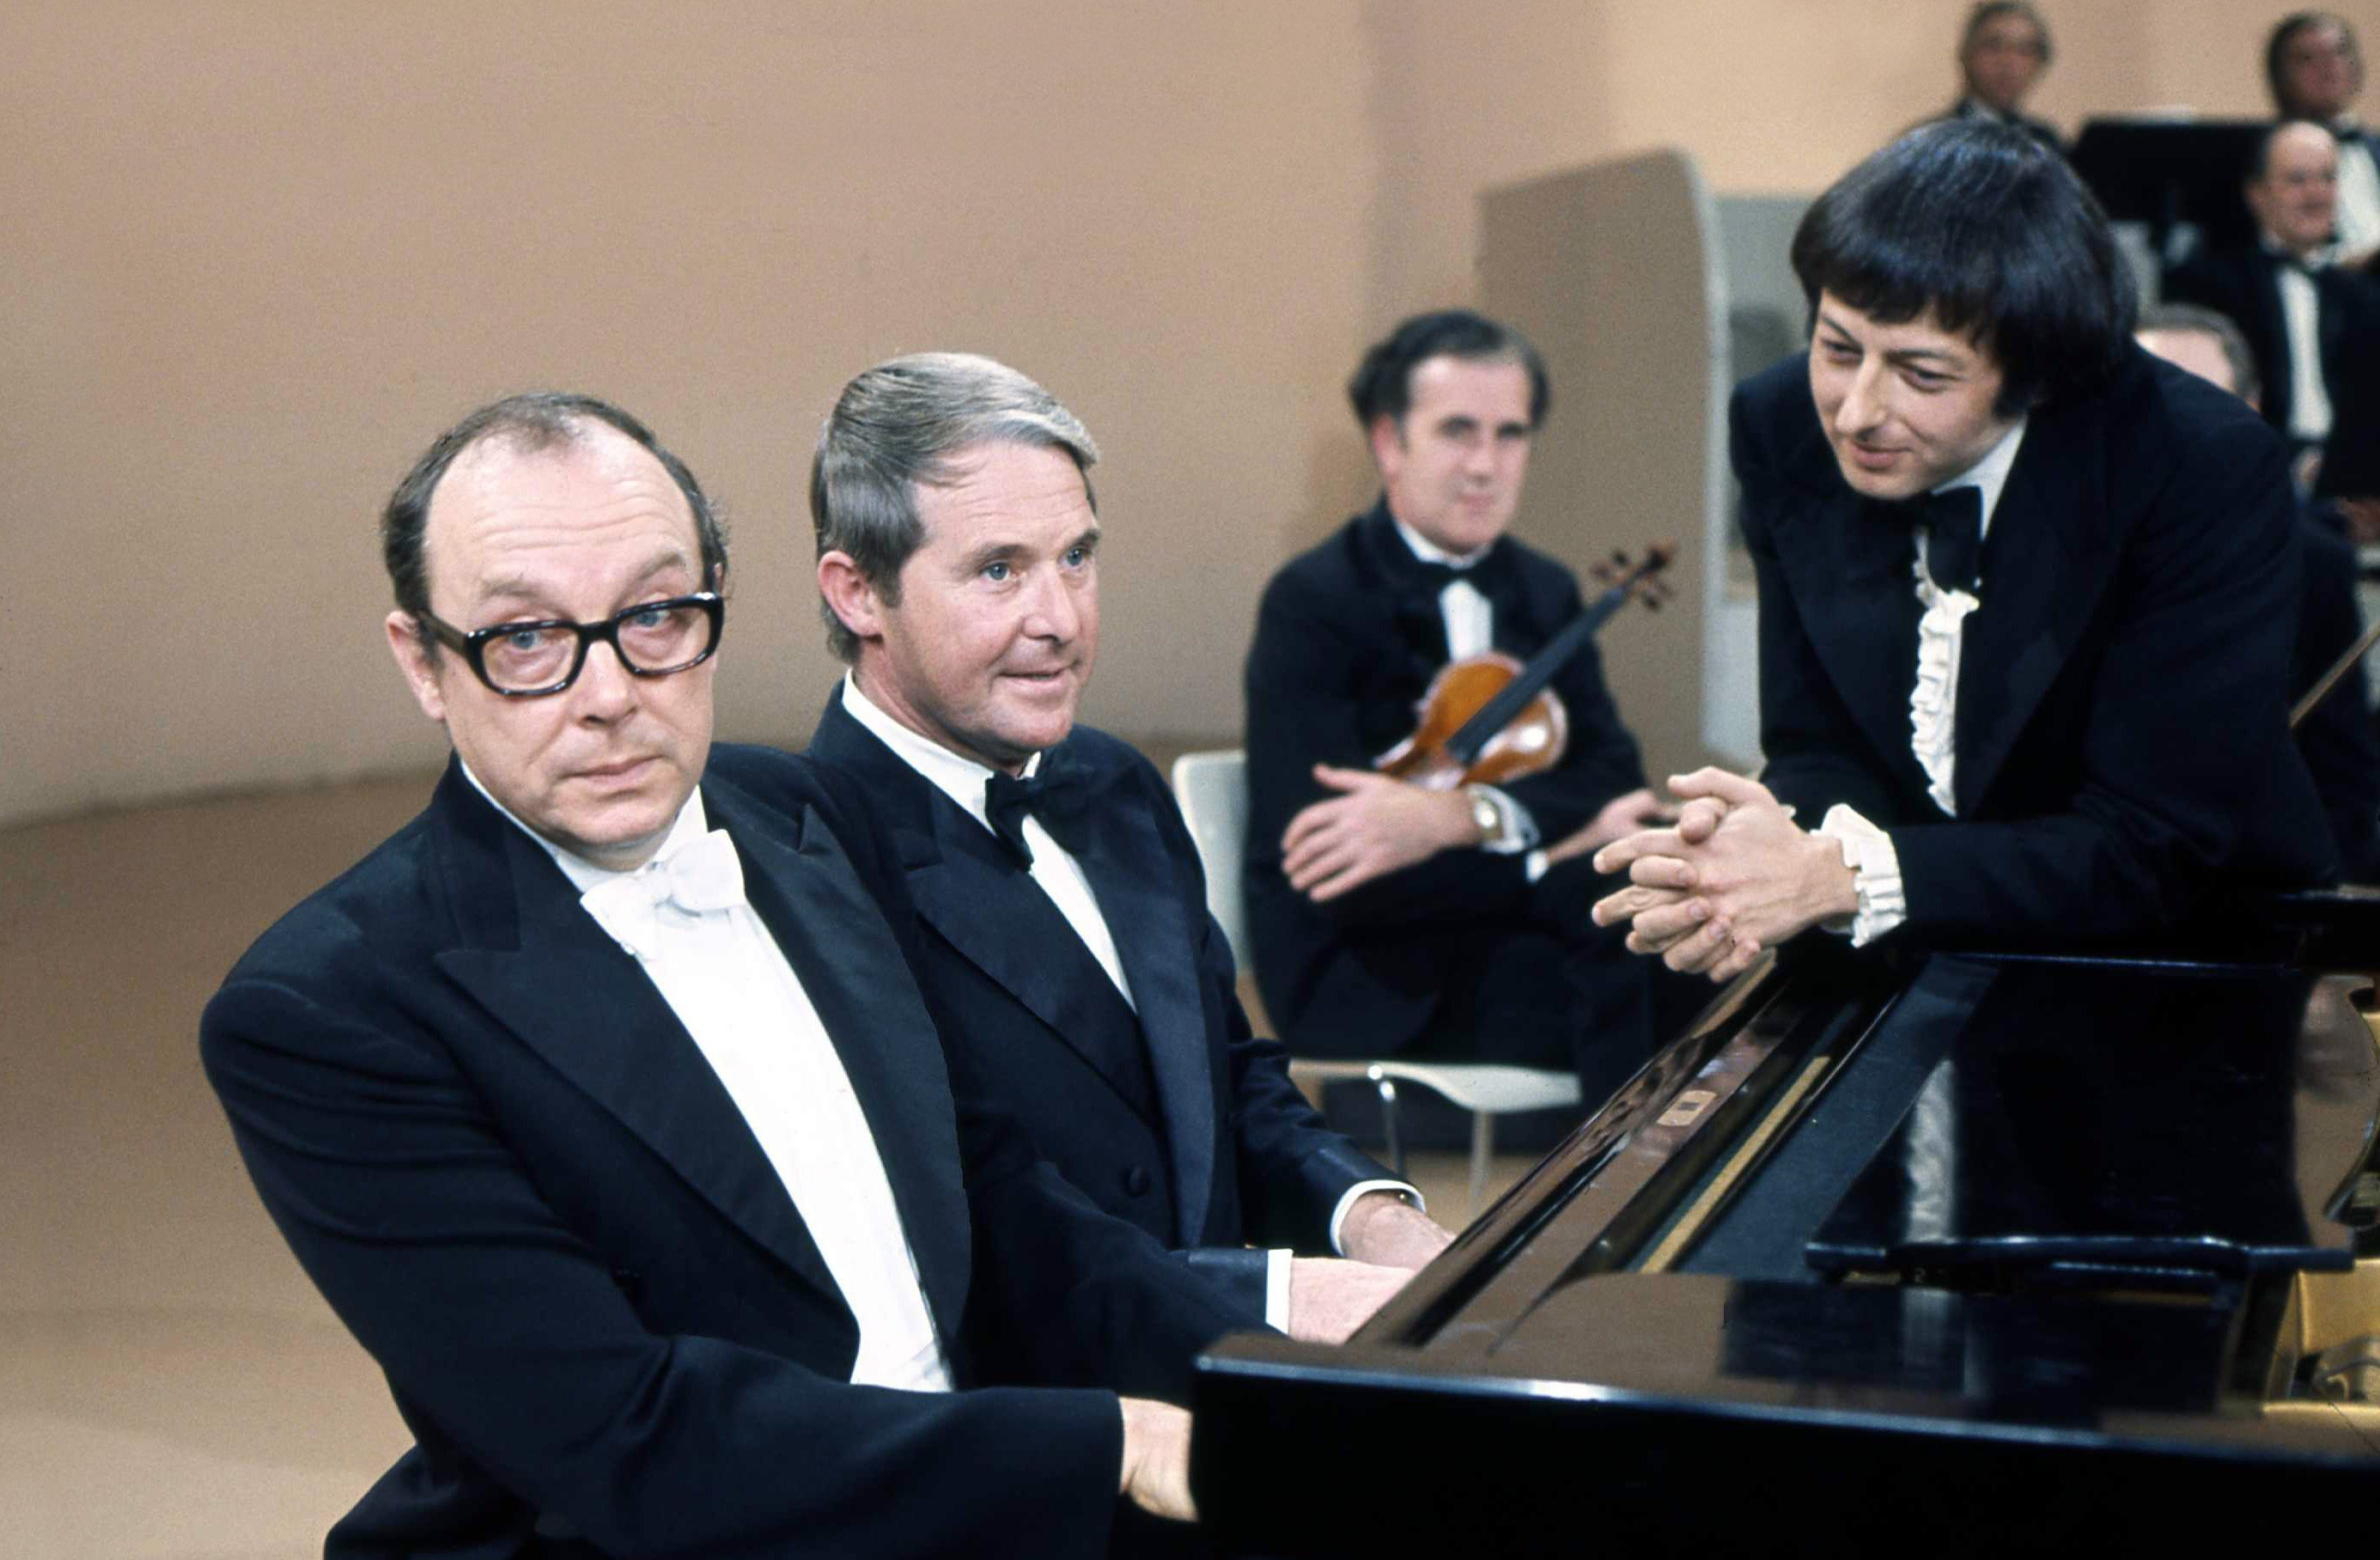 Andre Previn dead at 89 – Four-time Oscar-winning composer famous for Morecambe and Wise sketch dies at home in New York